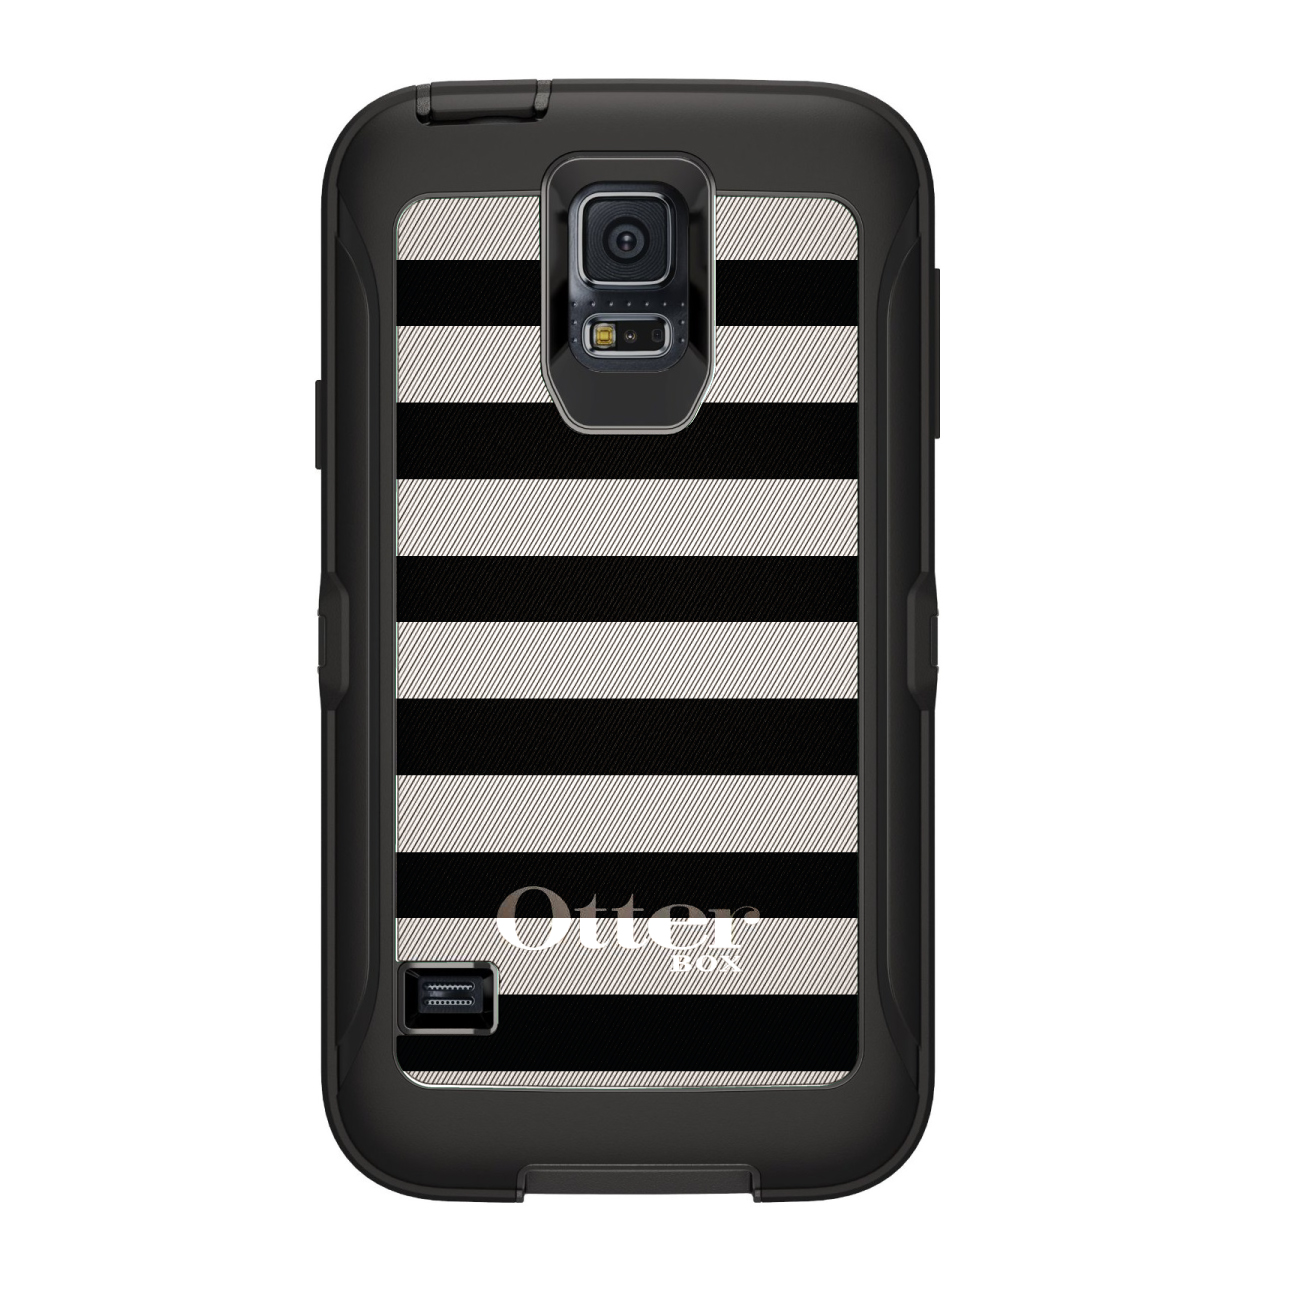 CUSTOM Black OtterBox Defender Series Case for Samsung Galaxy S5 - Black & White Bold Stripes